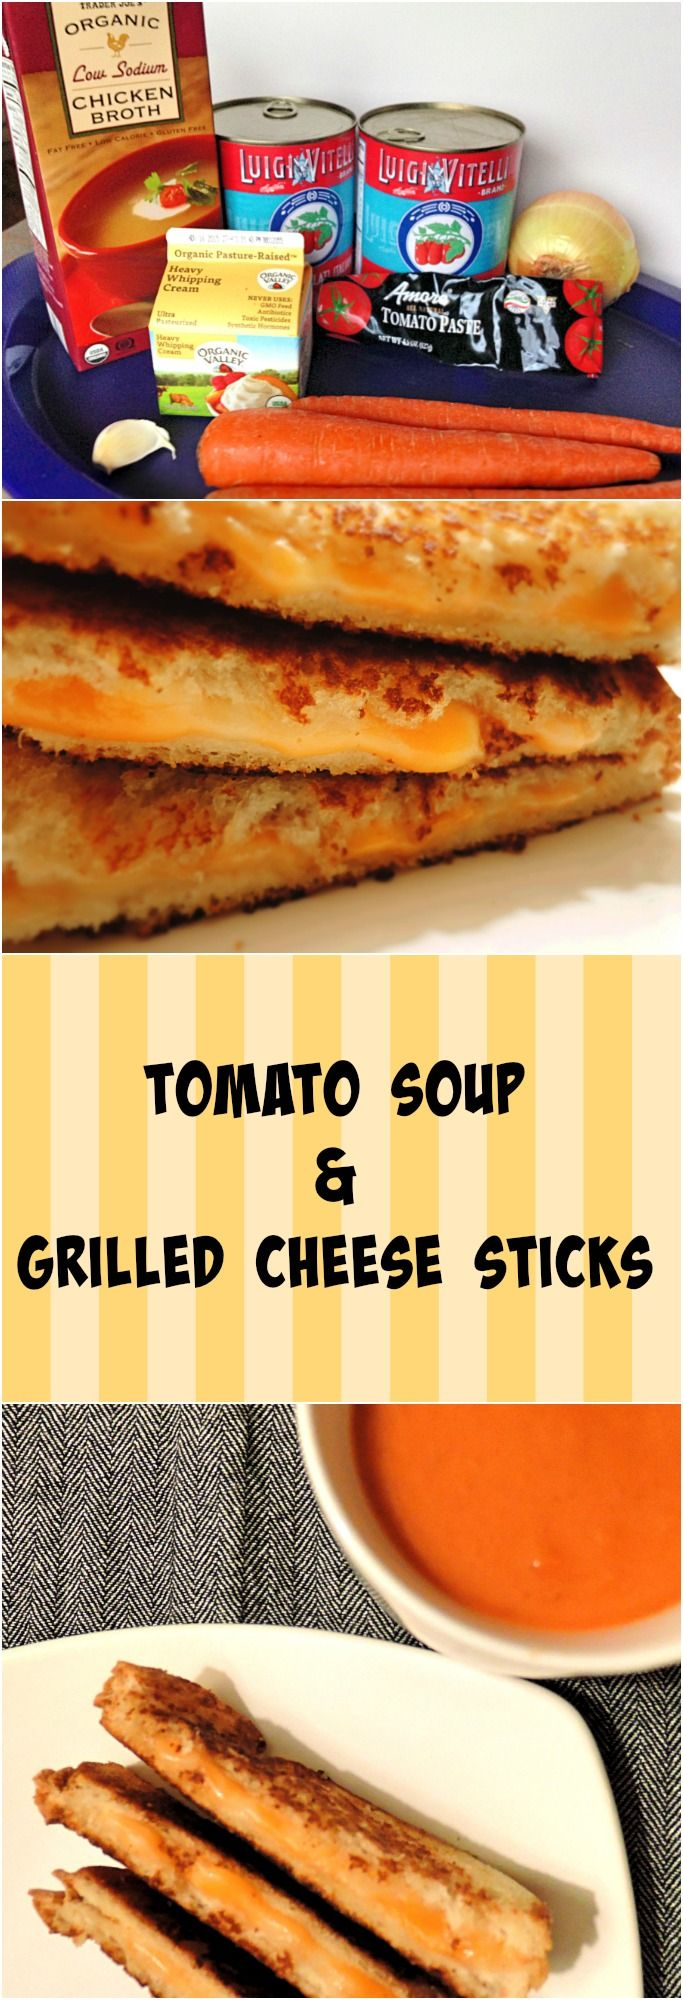 Homemade Tomato Soup and Grilled Cheese sticks.. your next week night meal or casual party food.